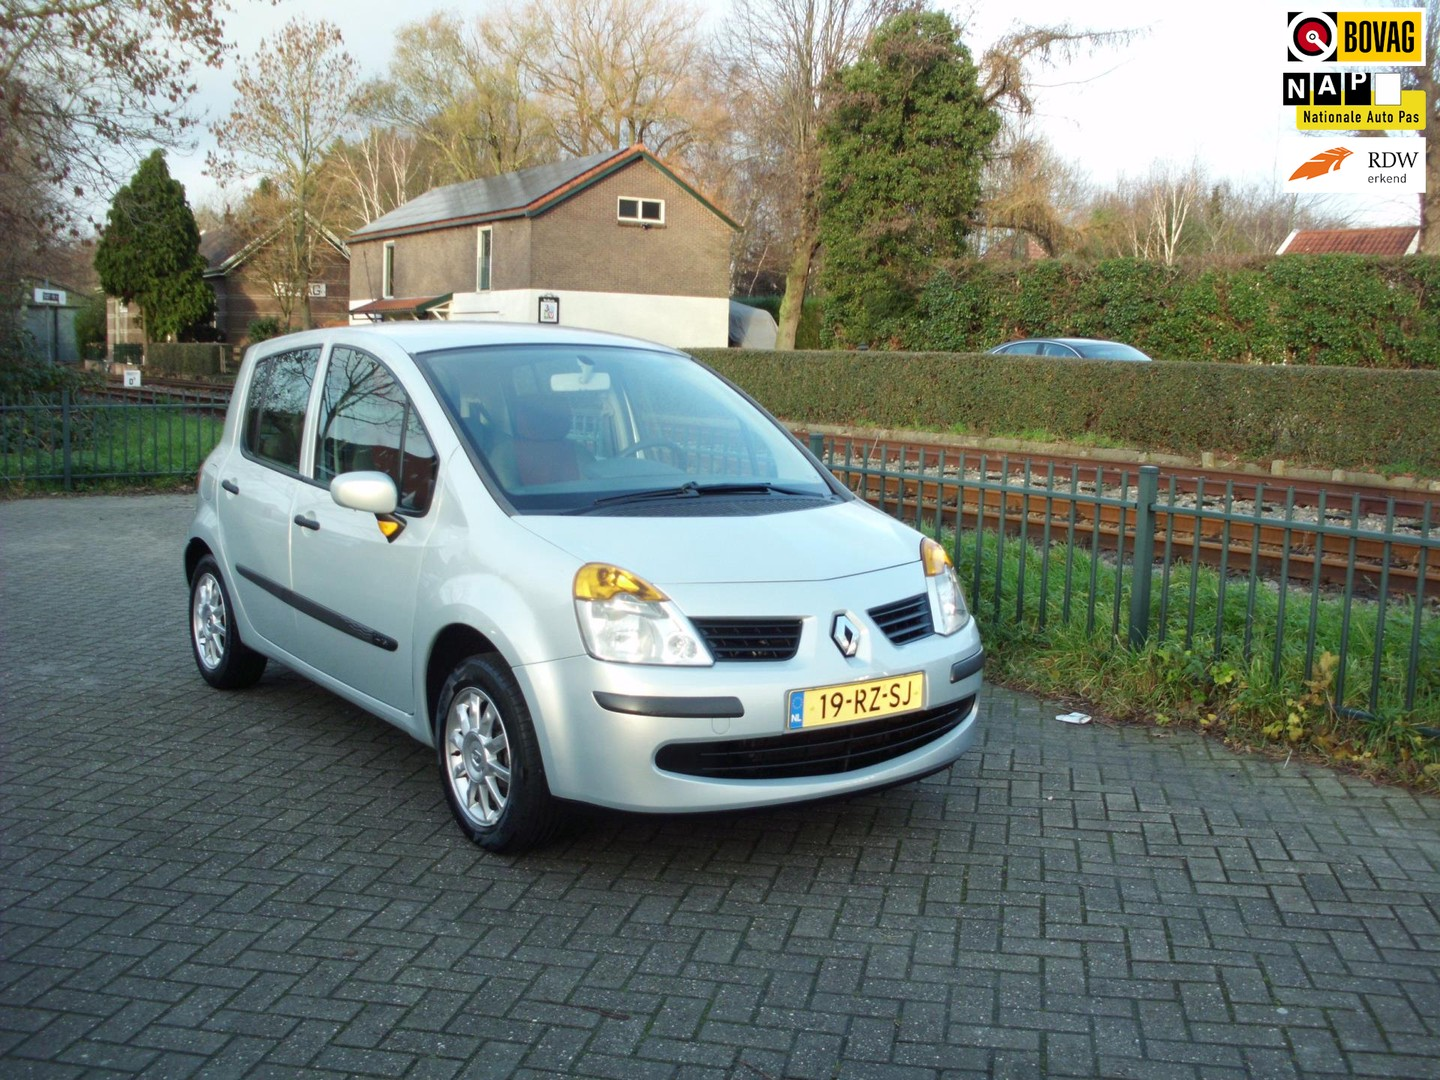 Renault Modus 1.4-16v expression luxe airco rijklaar